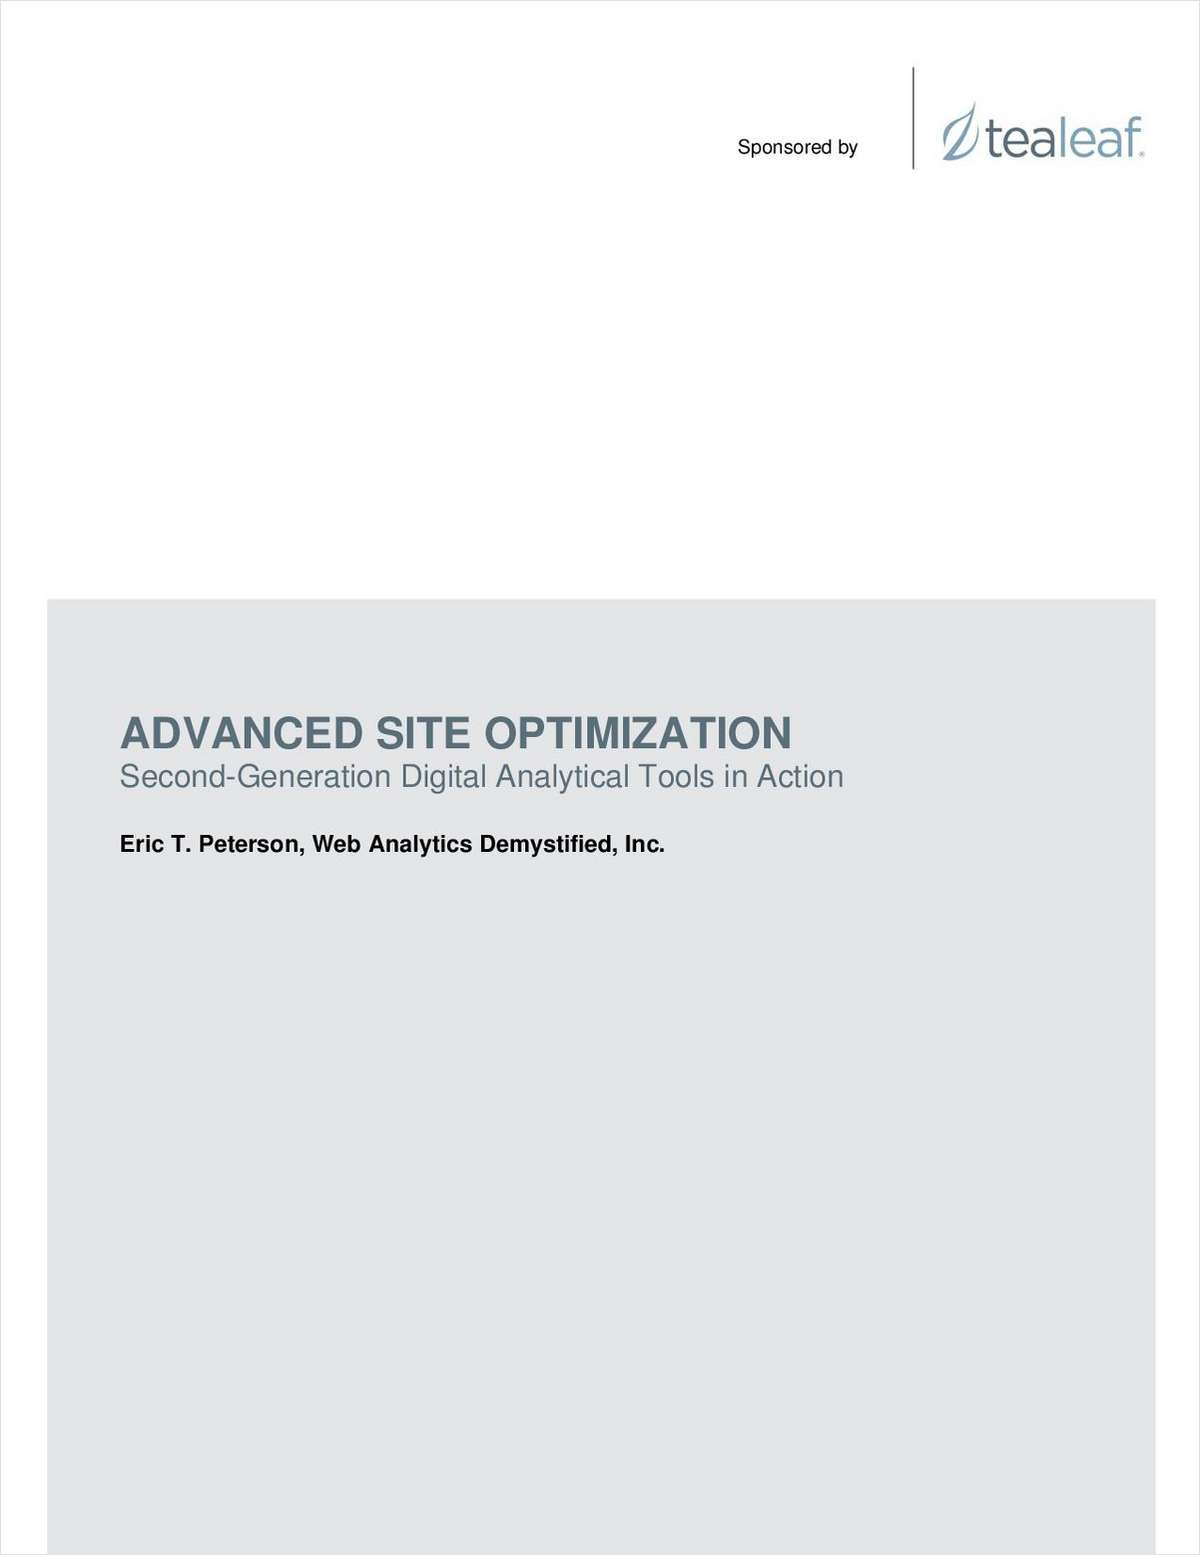 Advanced Site Optimization: Second-Generation Digital Analytical Tools